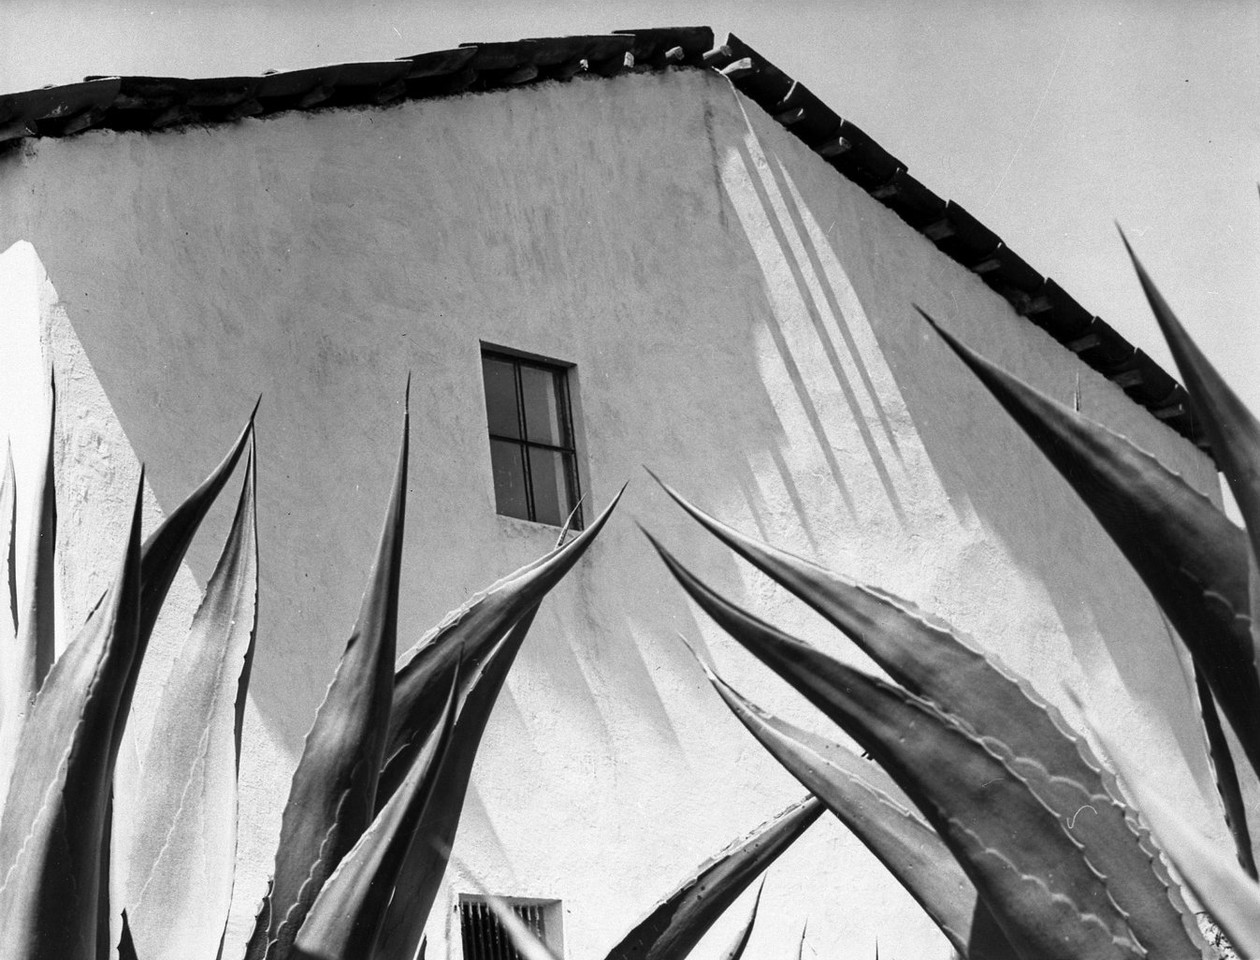 Window to the Agaves, Mexico (1974) by Manuel Alvarez Bravo